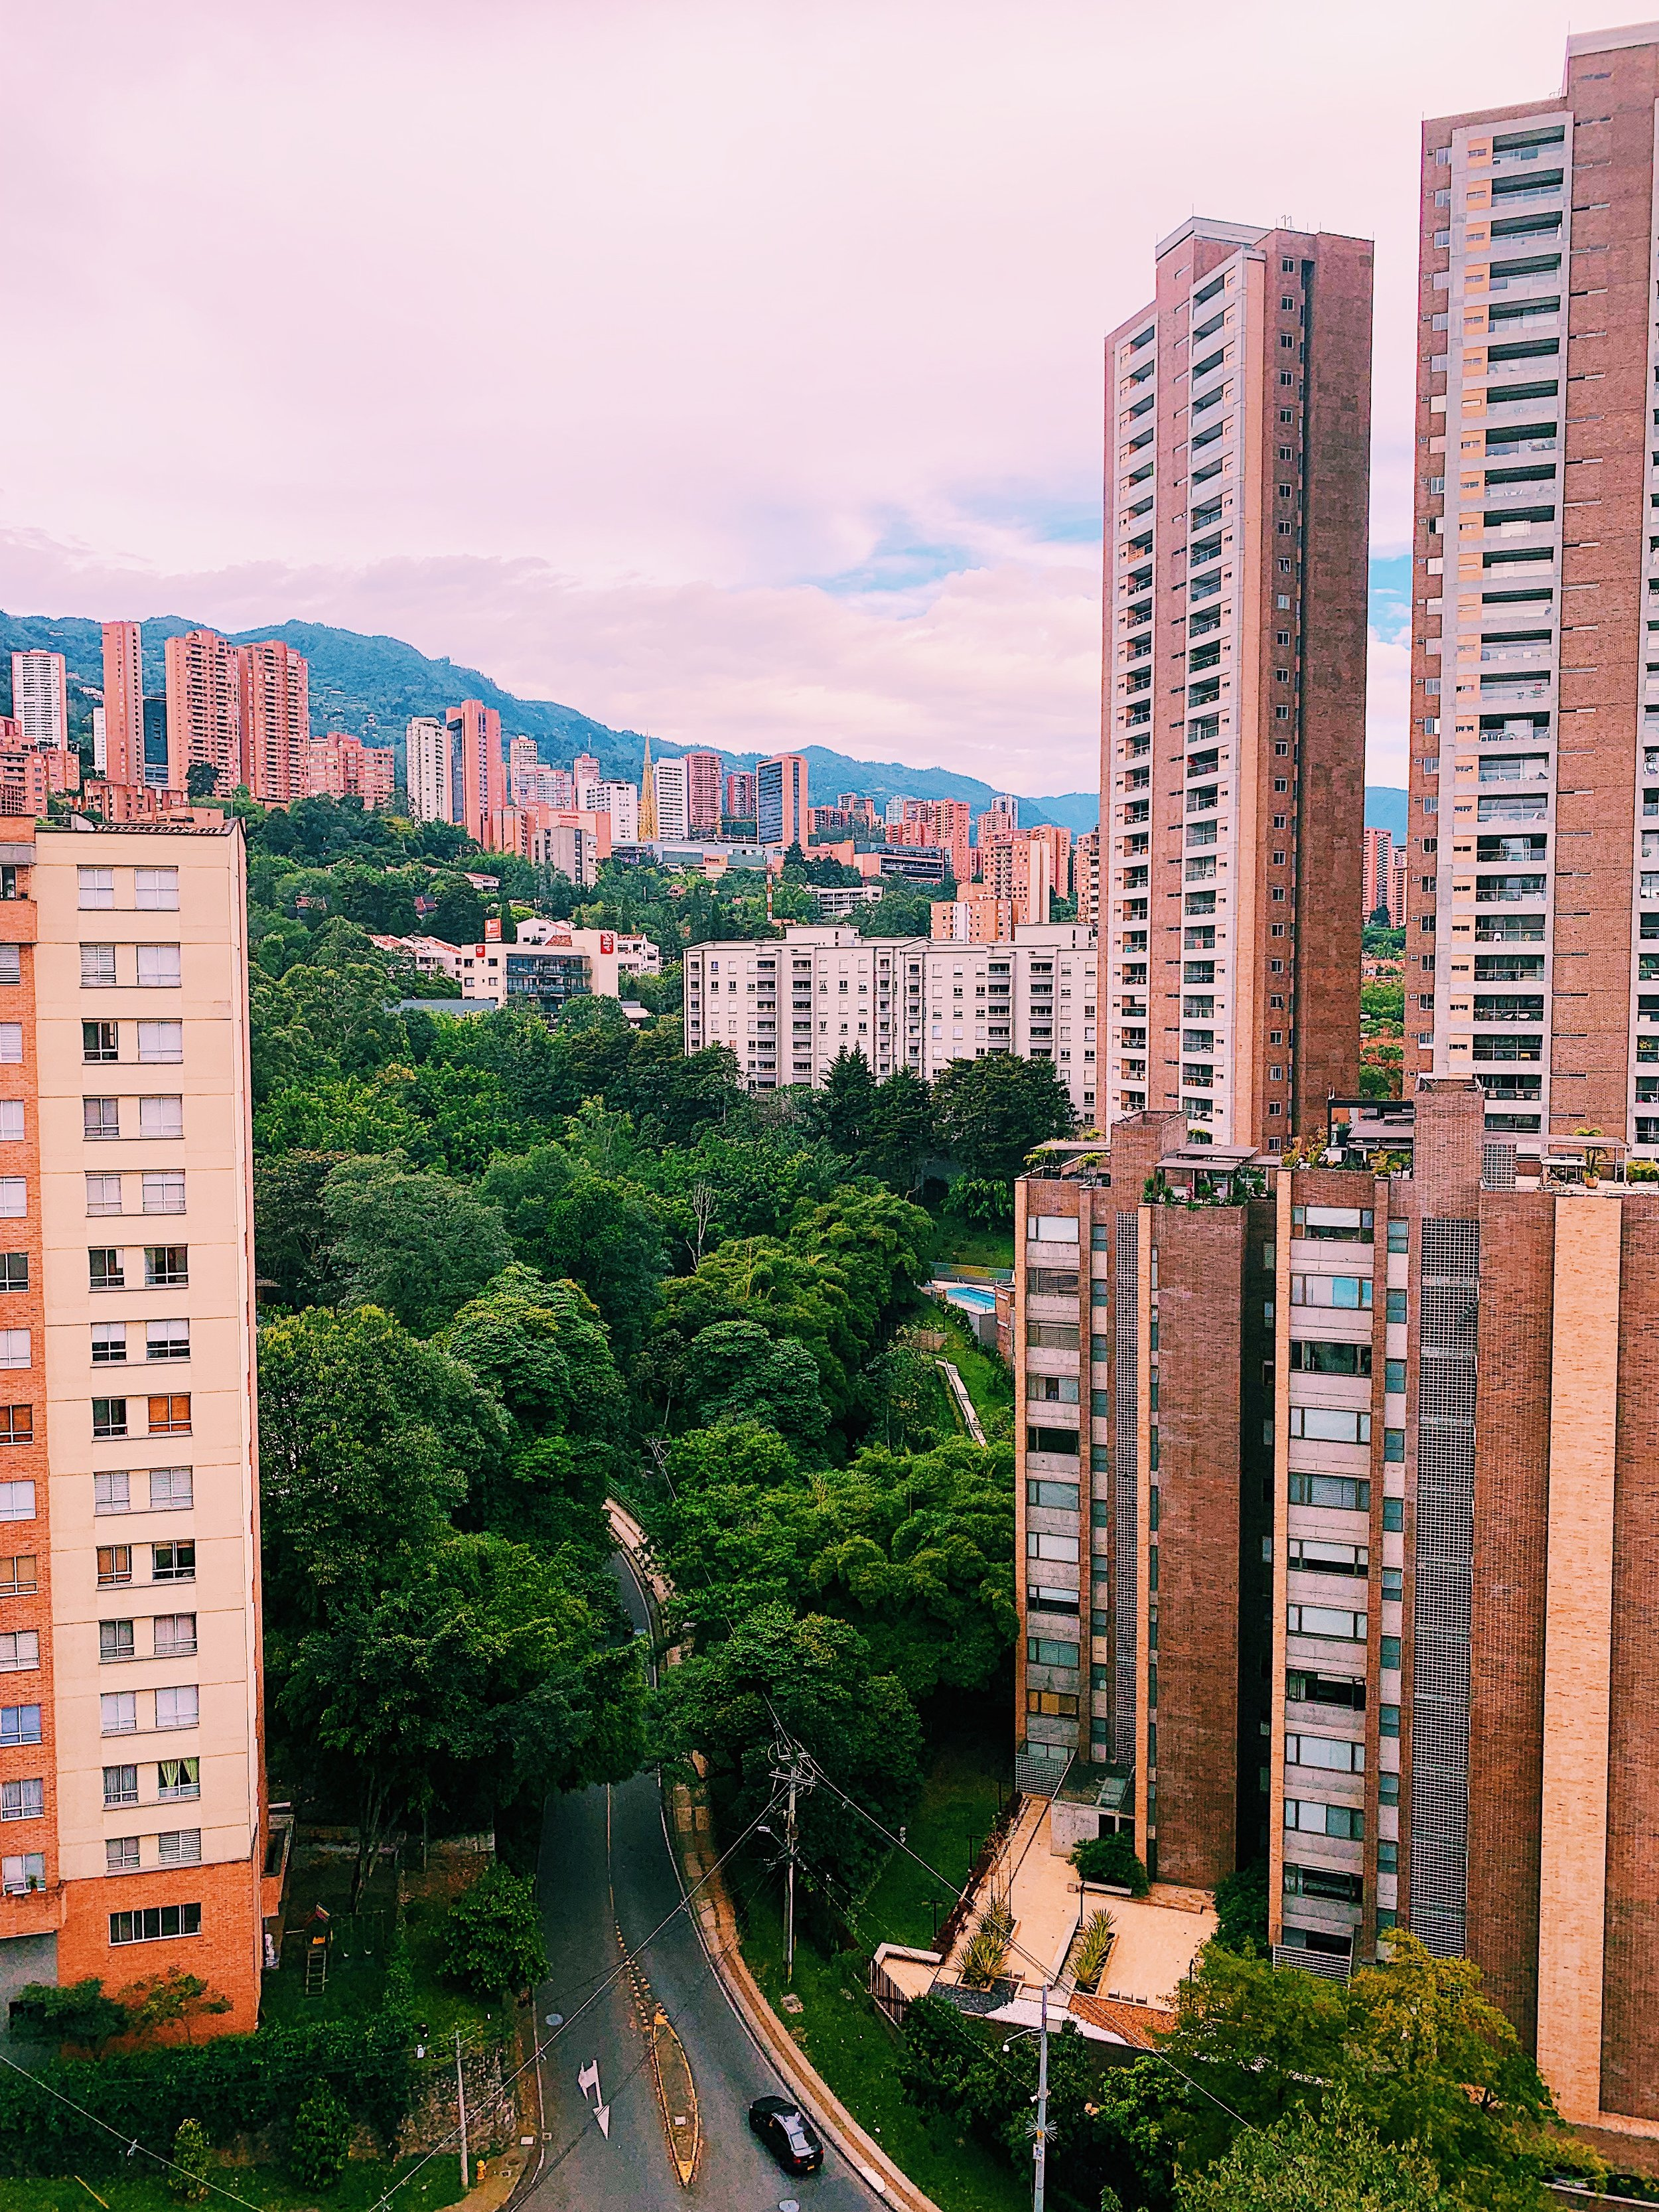 View from my apartment up to the hillside of  Medellín